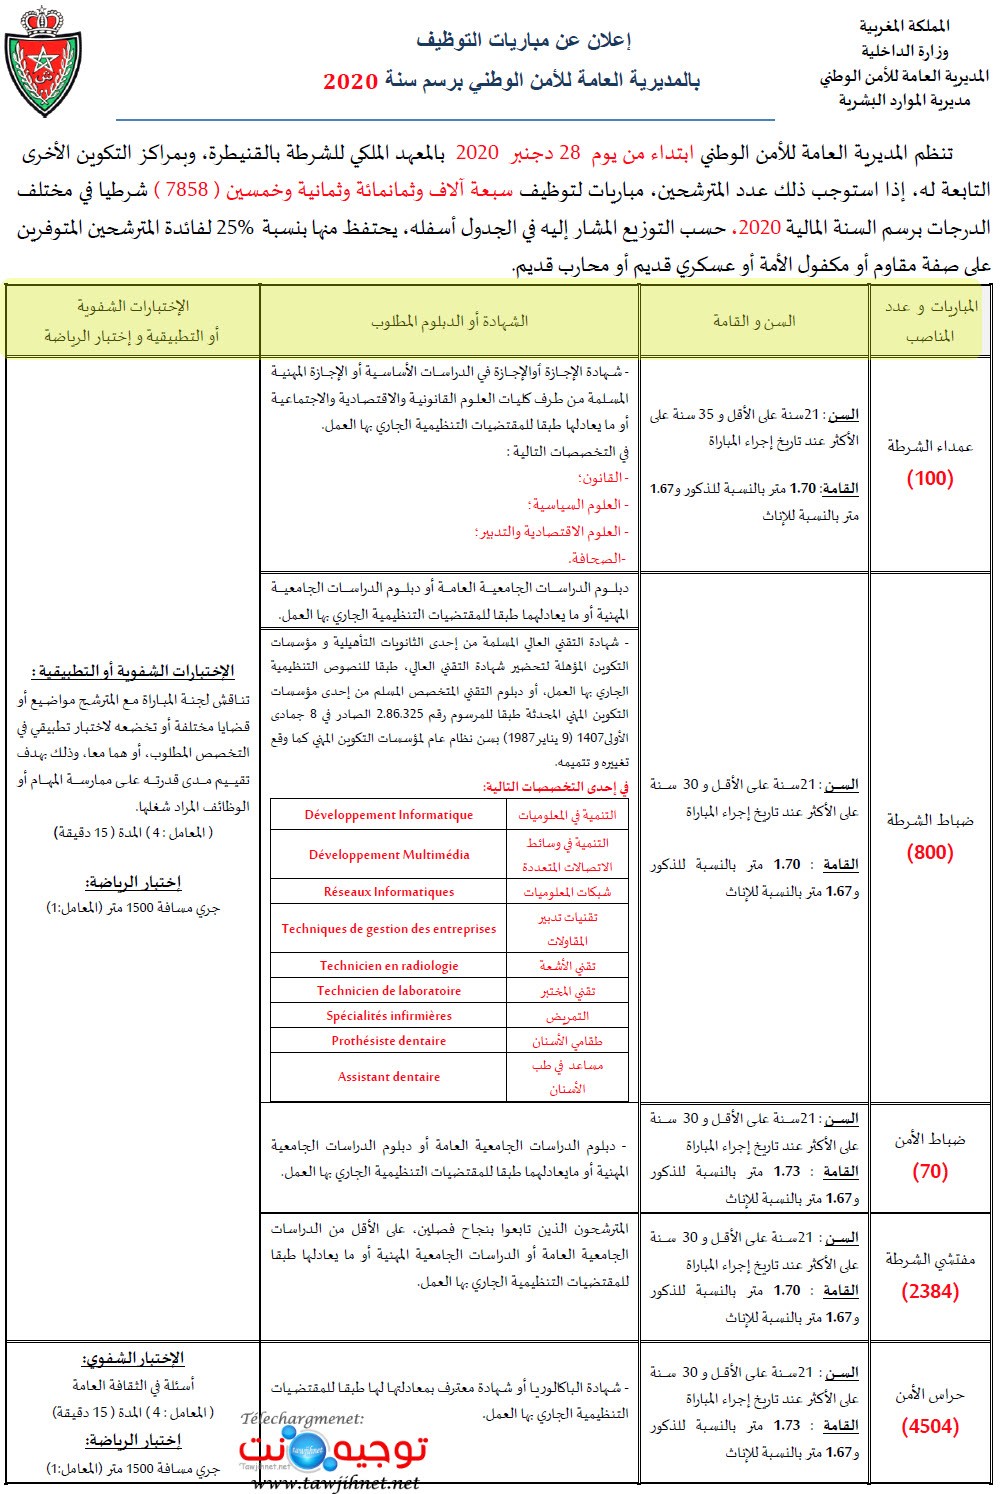 concours-police-maroc-dgsn-2020-2021_Page_1.jpg